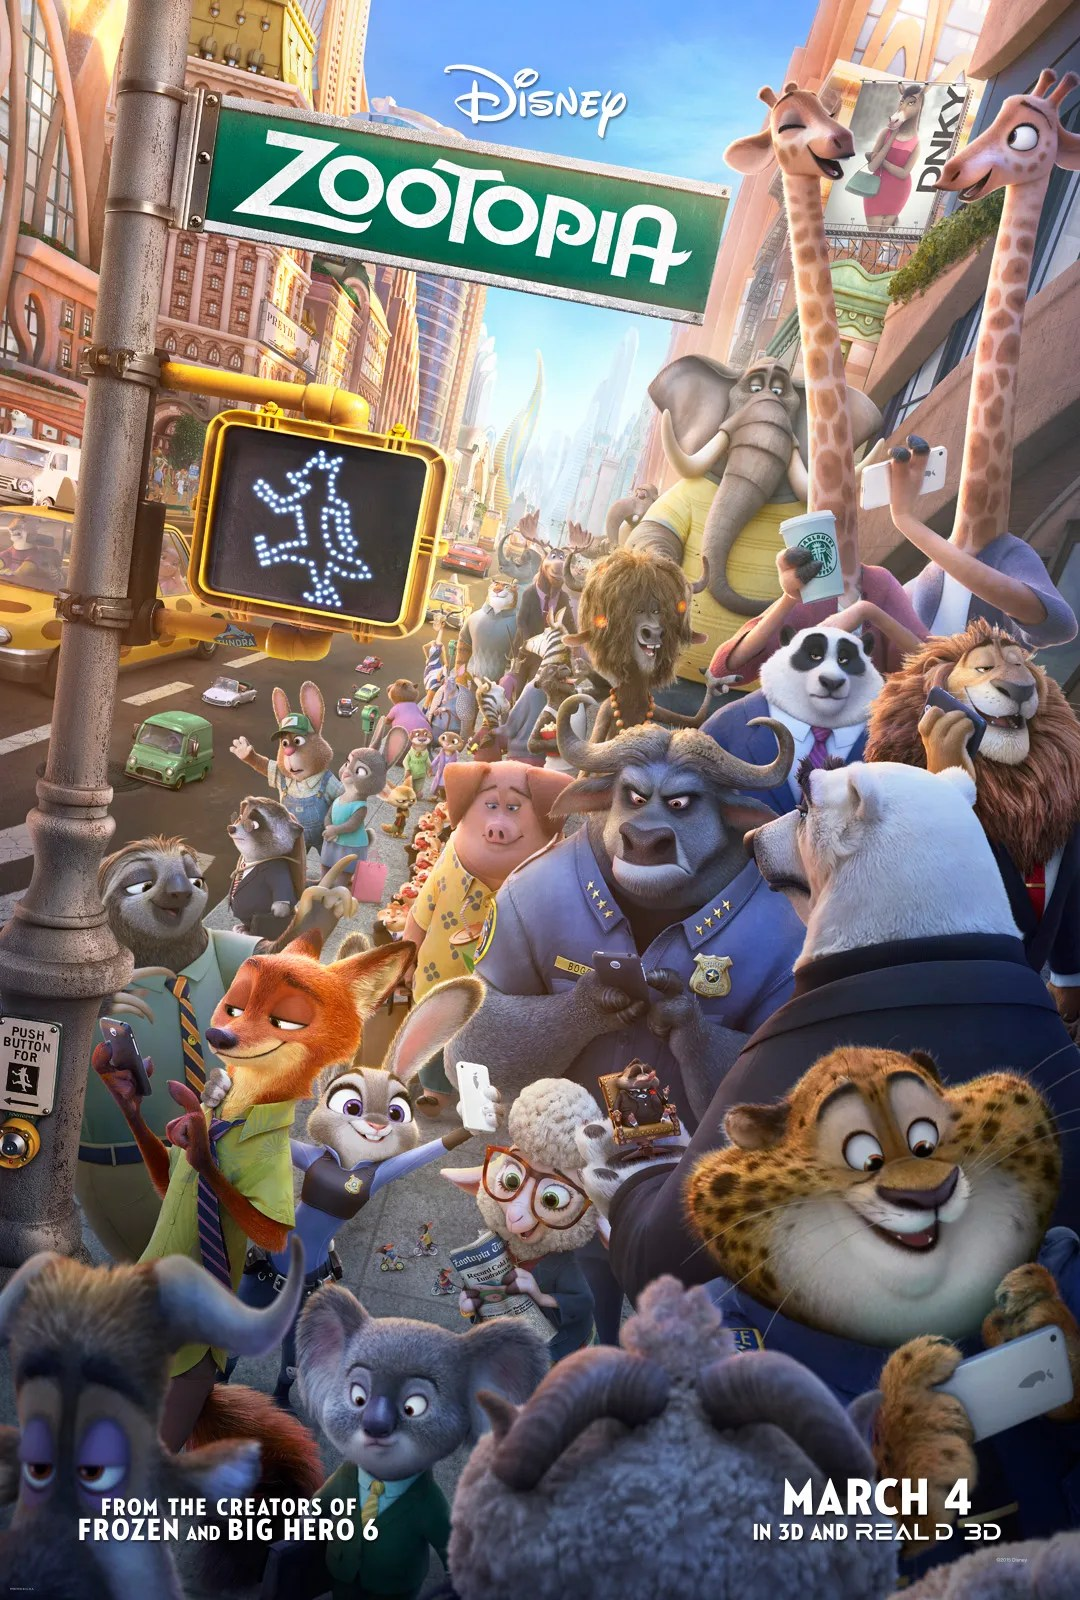 https://i0.wp.com/cdn.collider.com/wp-content/uploads/2015/12/zootopia-movie-poster.jpg